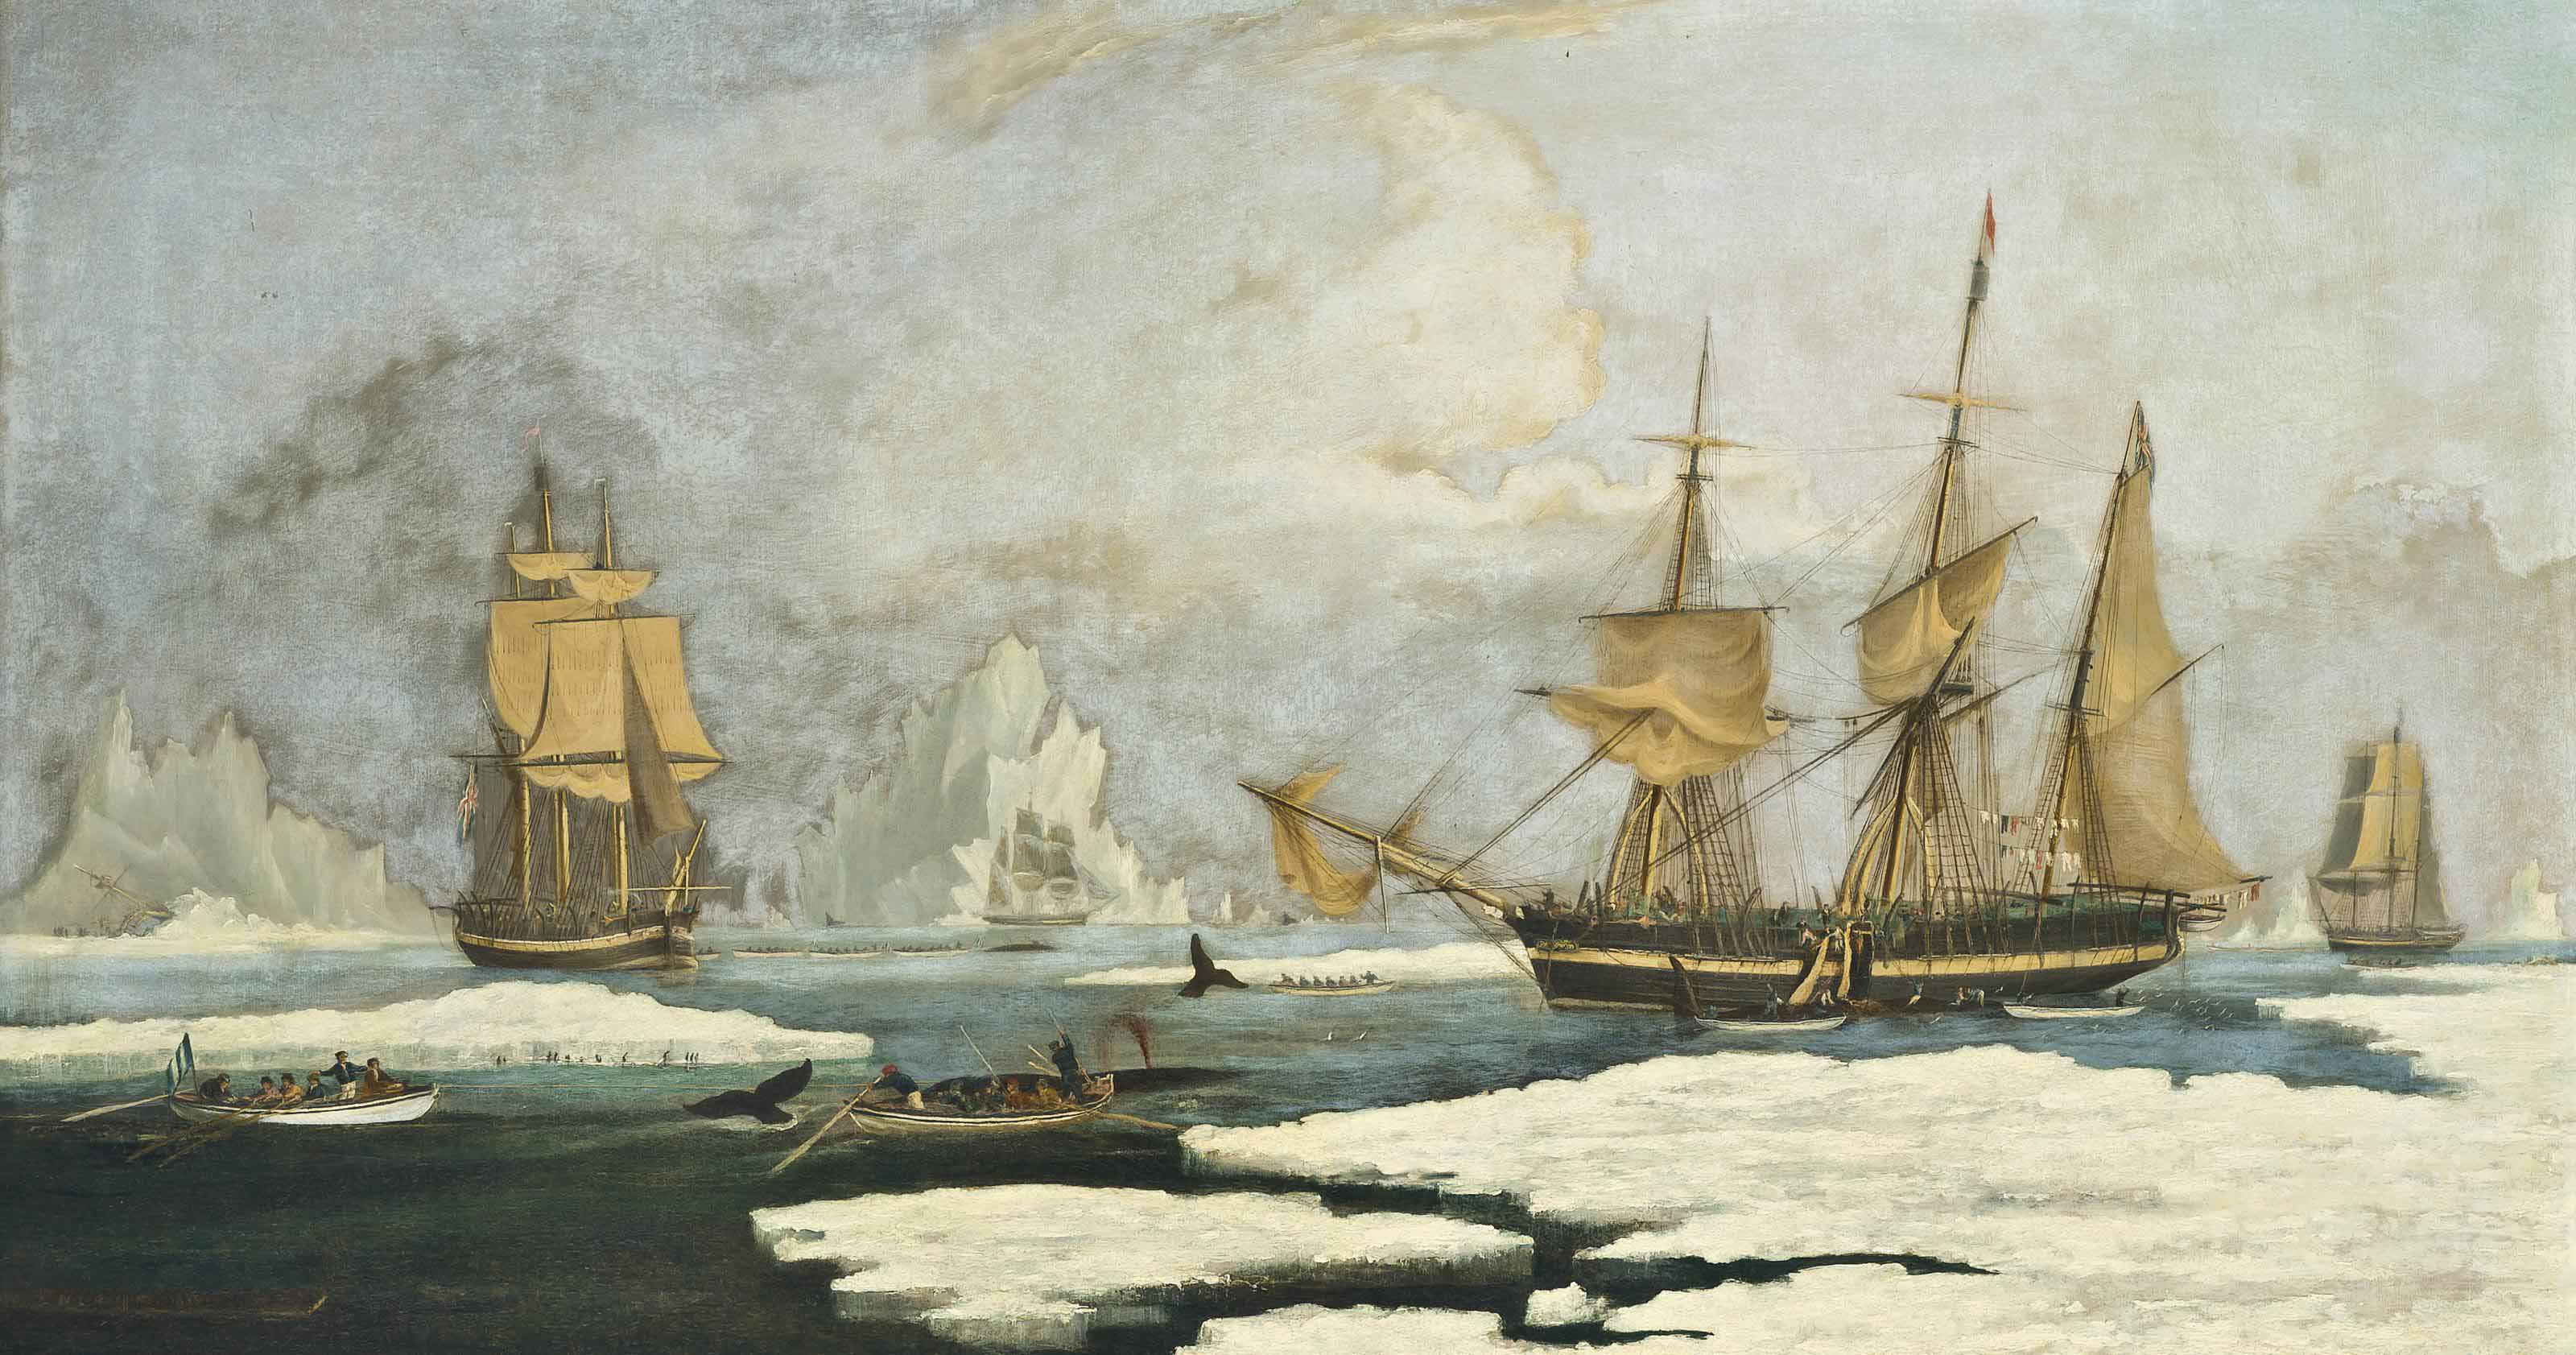 The Northern Whale Fishery: The ship Harmony of Hull and other ice-bound whalers, hunting seals, narwhals and whales on the Davis Straits whaling ground off Greenland